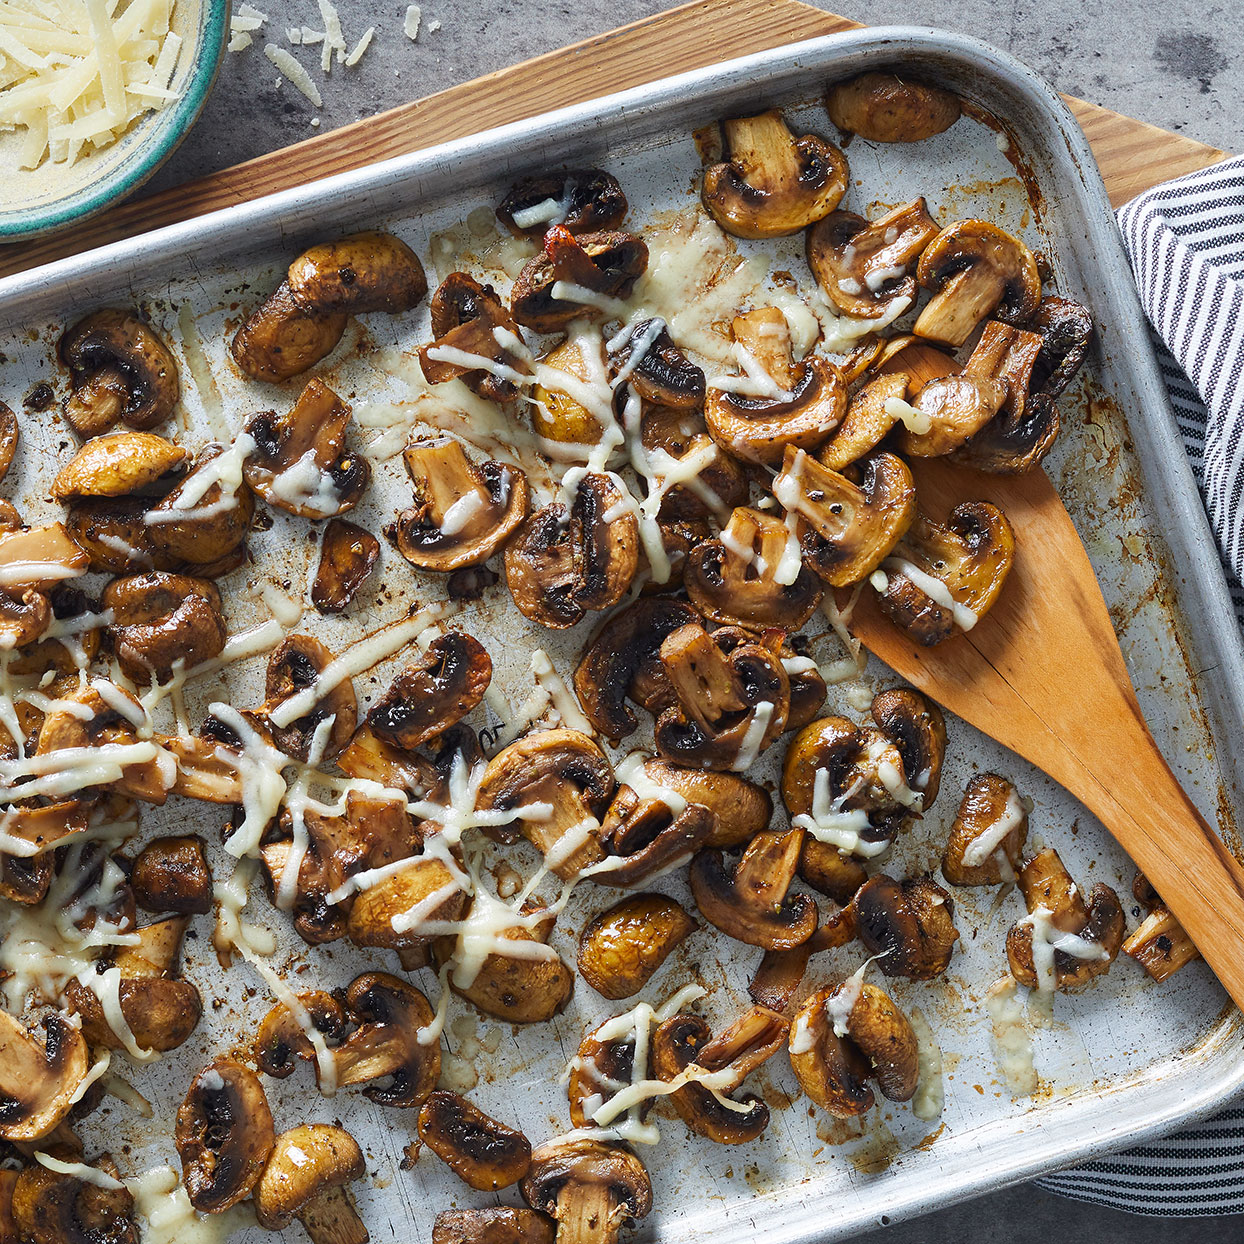 Balsamic-Roasted Mushrooms with Parmesan Trusted Brands